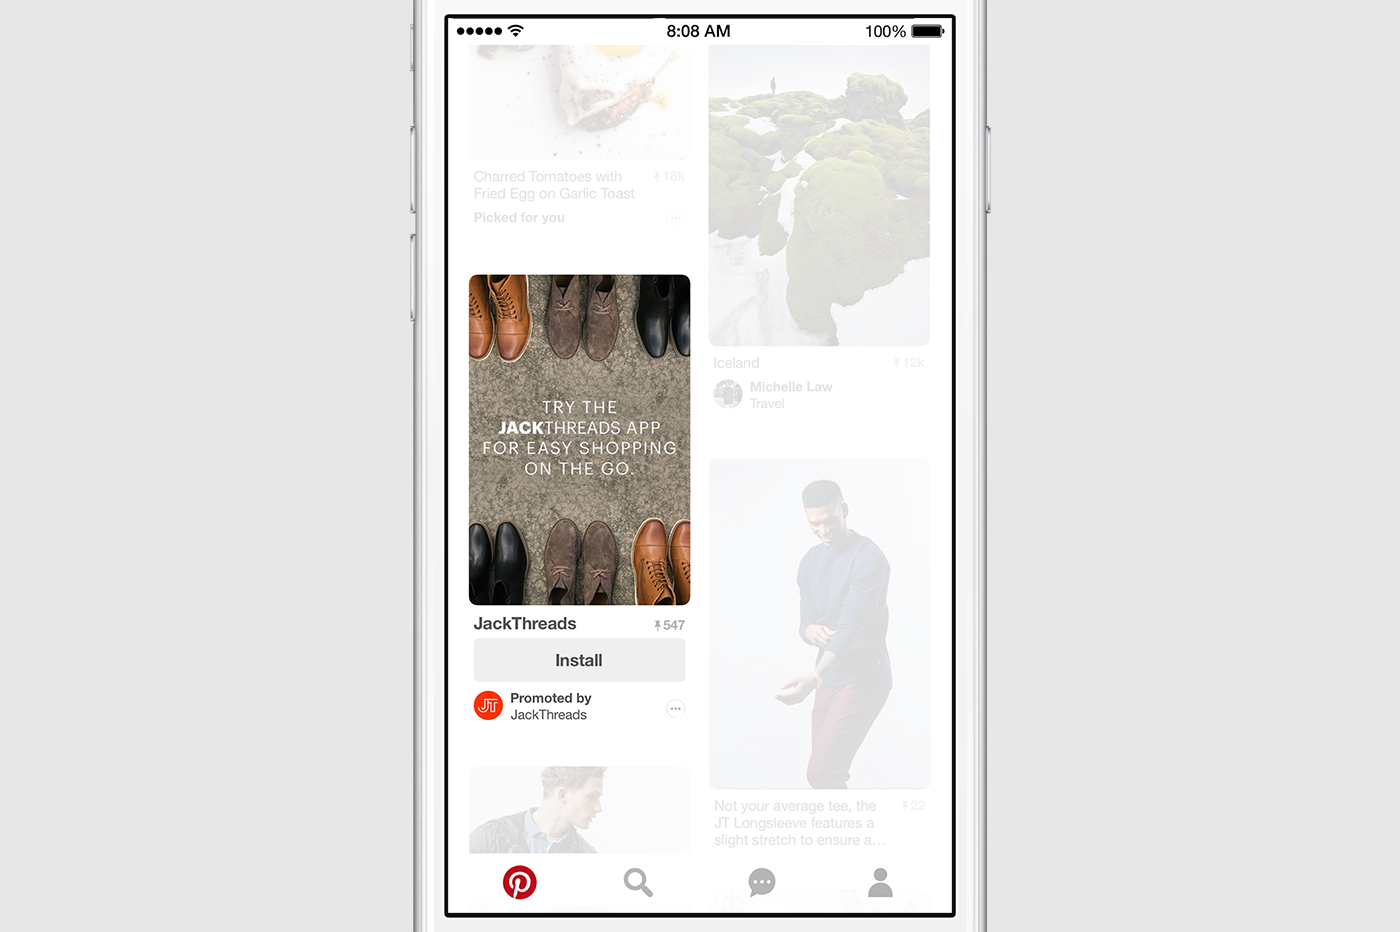 Pinterest Expands Promoted App Pins to All Advertisers                      | Social Media Today